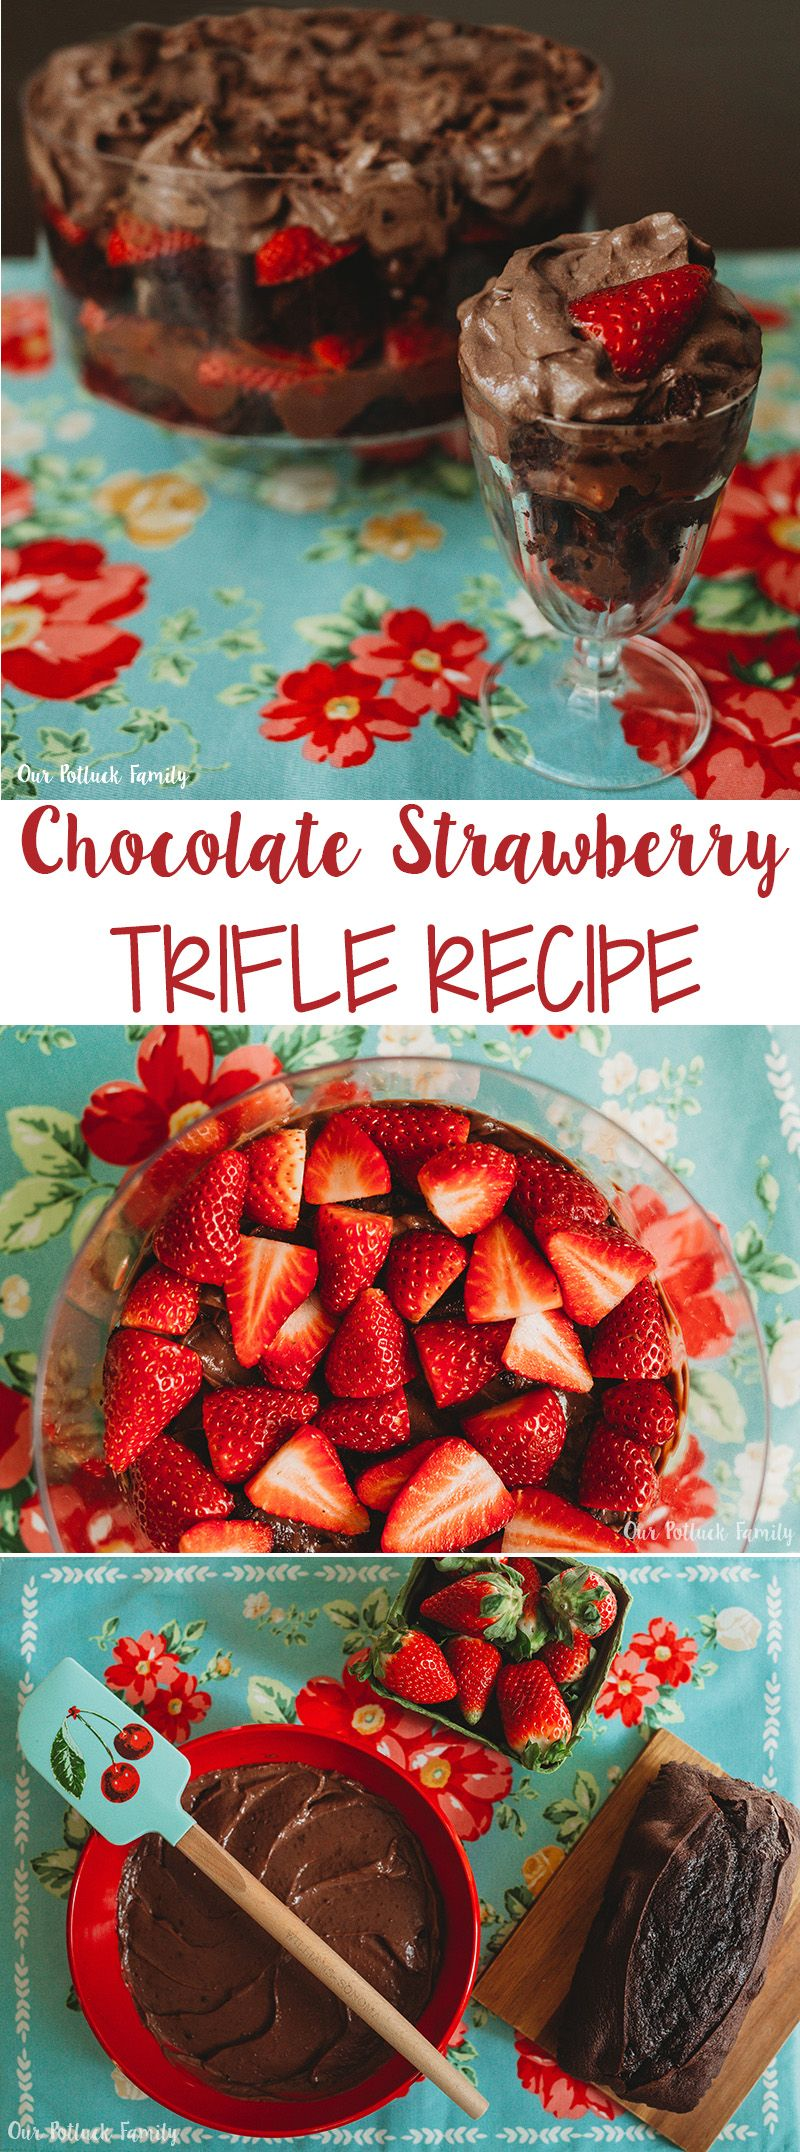 Chocolate Strawberry Trifle Dessert Recipe - Our Potluck Family